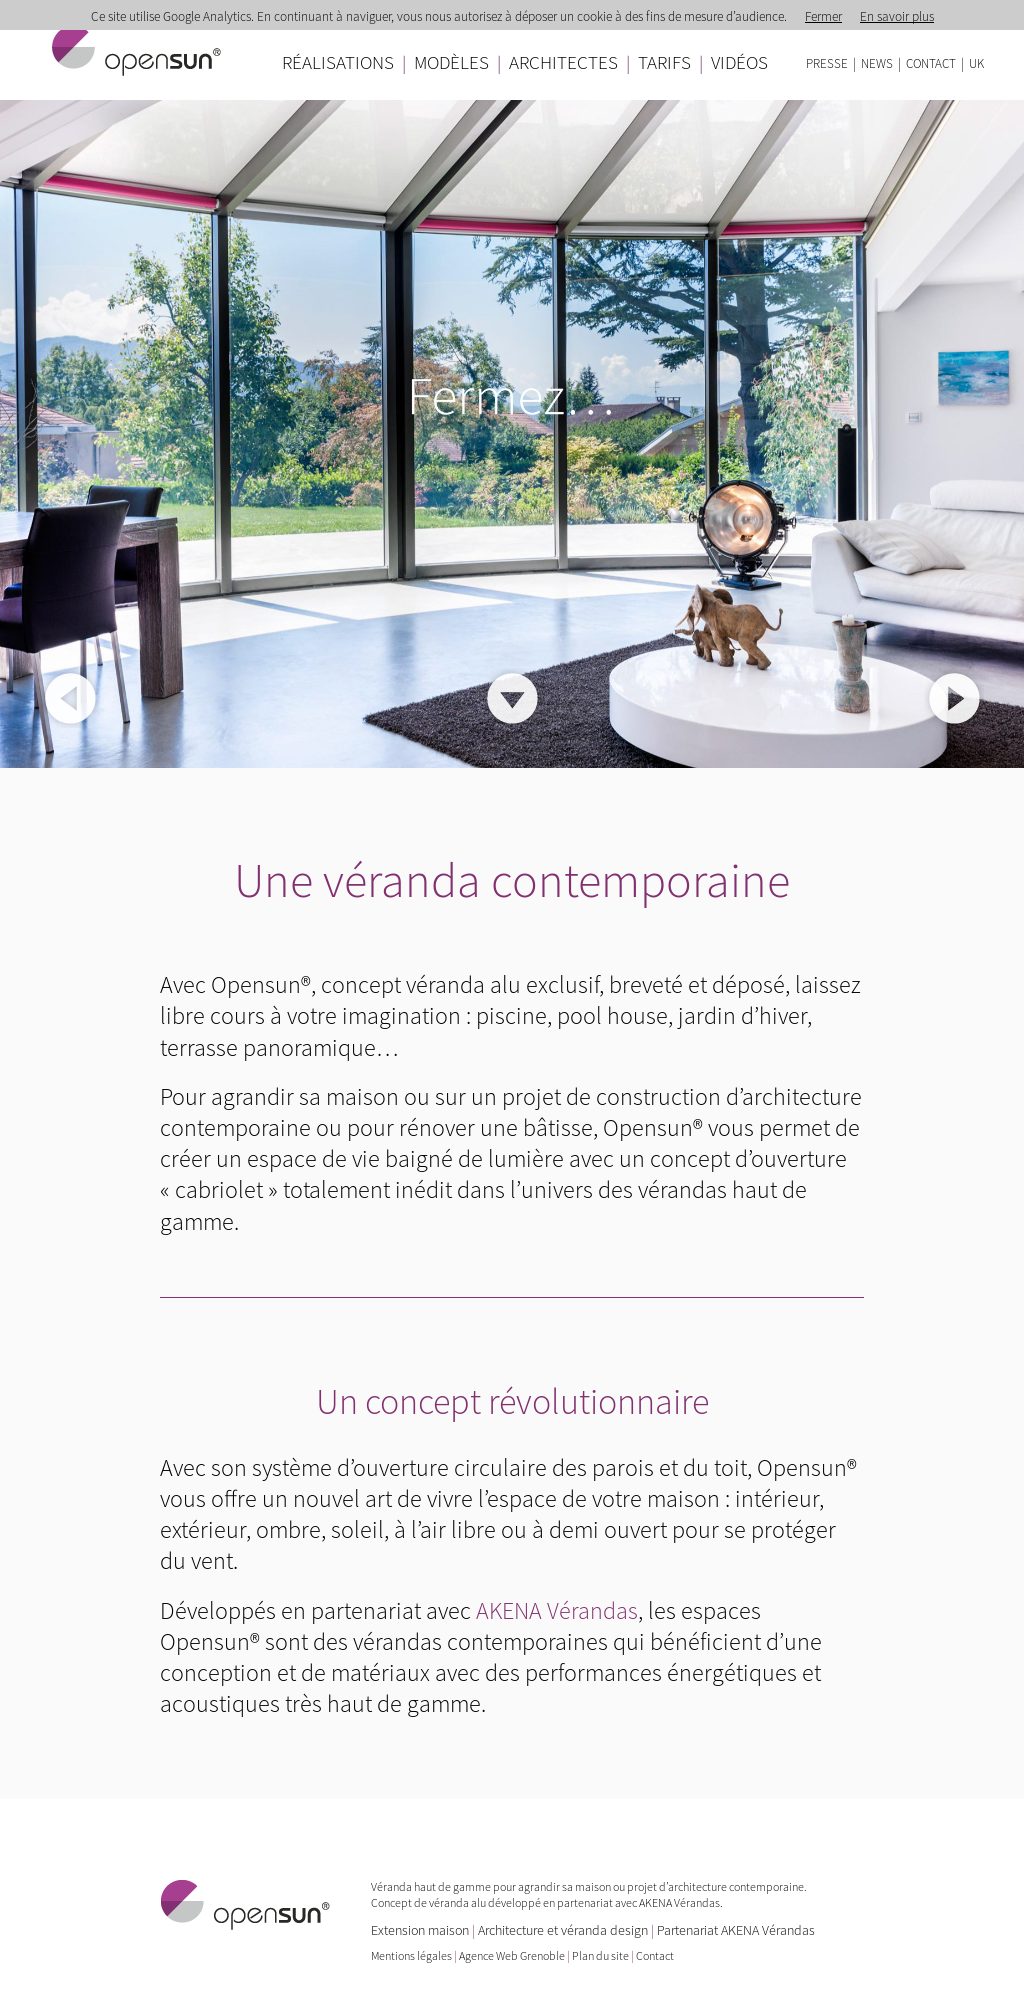 Plan Ou Photo Pool House Pour Piscine opensun competitors, revenue and employees - owler company